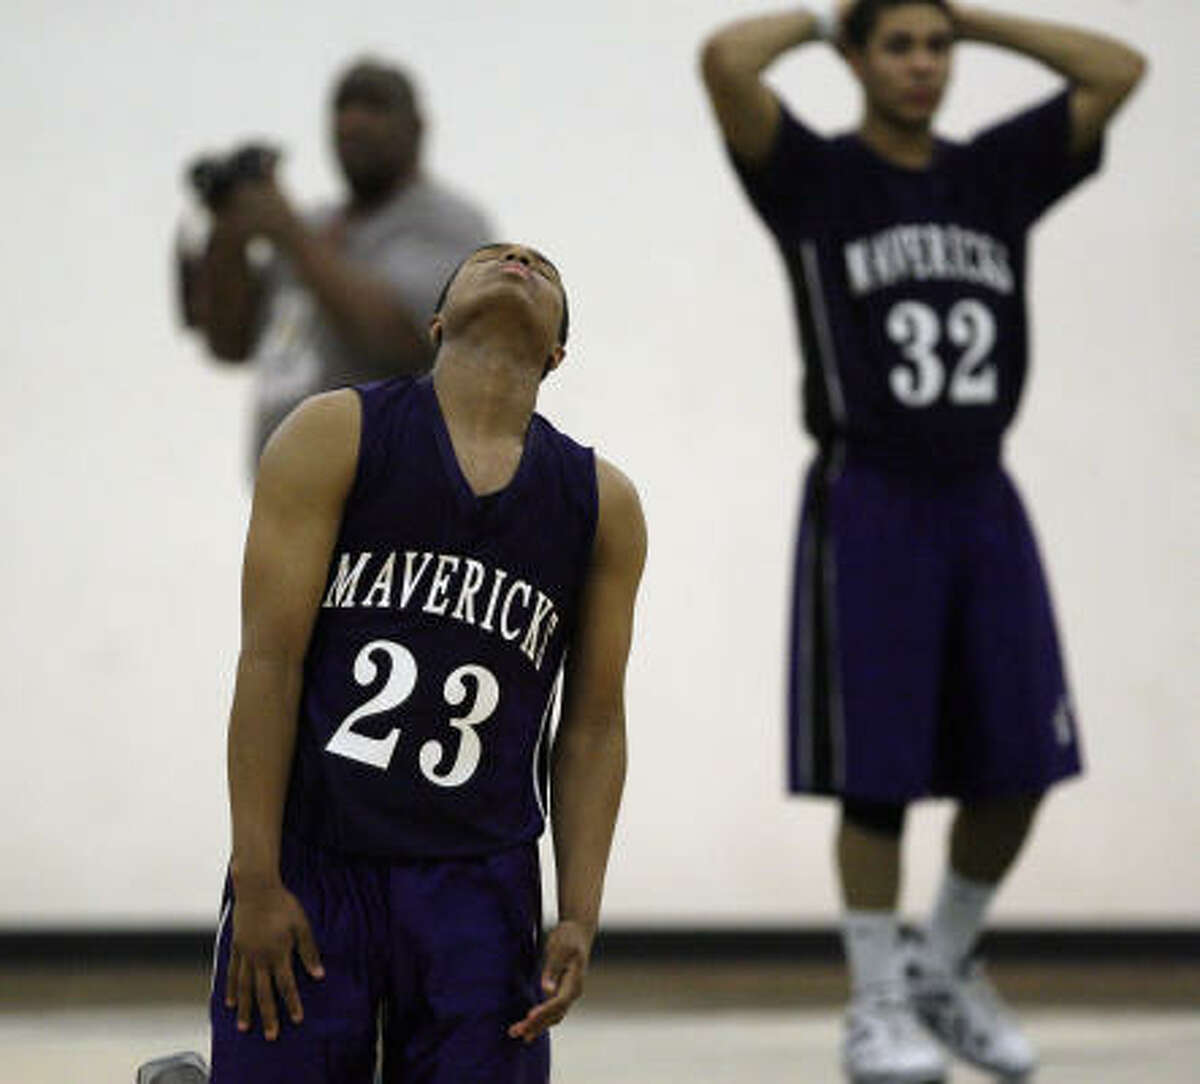 Morton Ranch's Michael Harmon (23) and Bill Herbert (32) are dejected after losing in double overtime.